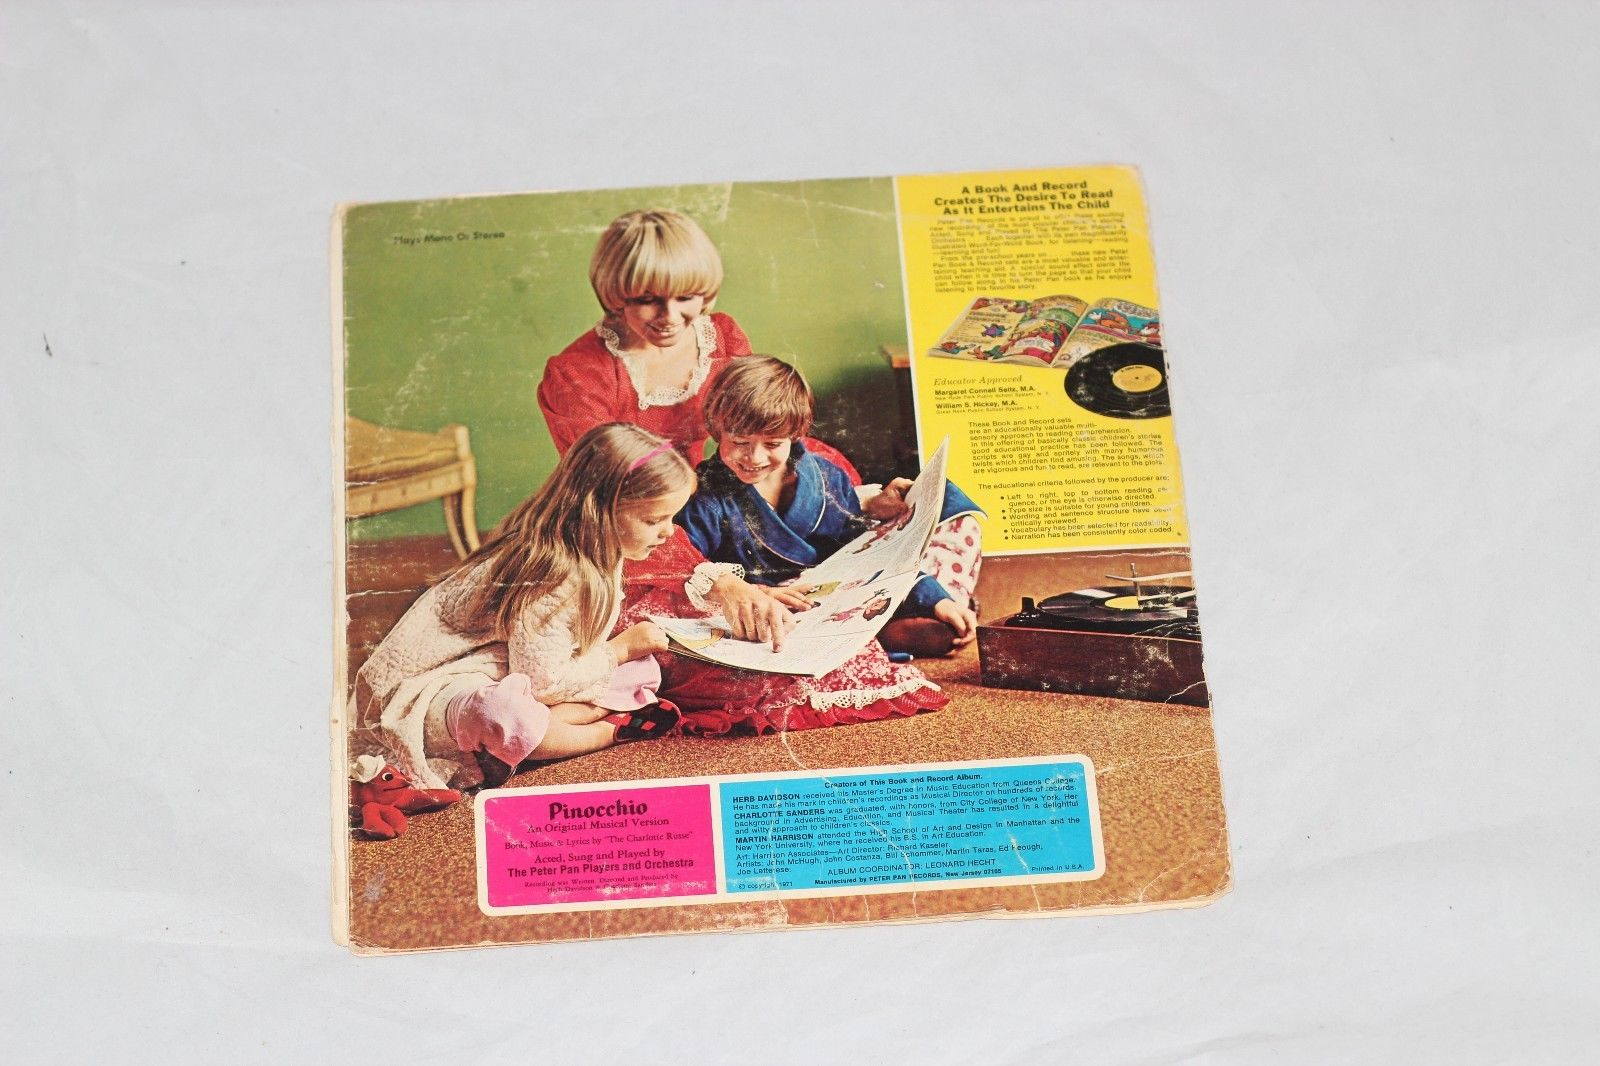 PINOCCHIO BOOK AND VINYL RECORD FROM PETER PAN RECORDS代拍_海外代购_美国代购_日